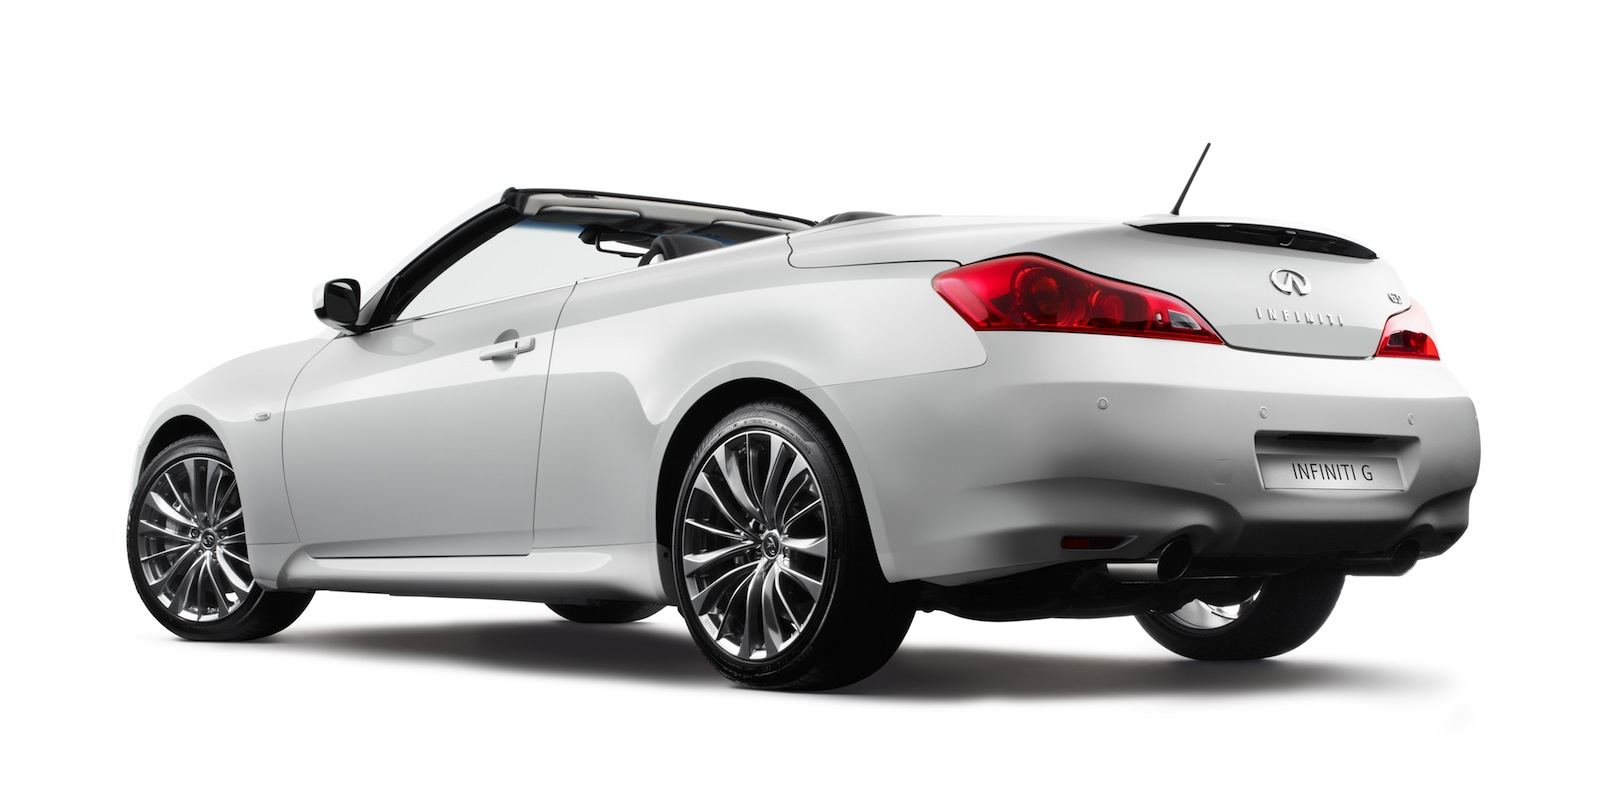 on cars payments coupe infinity pricing infiniti invoice details specs estimated dealer prices price and features